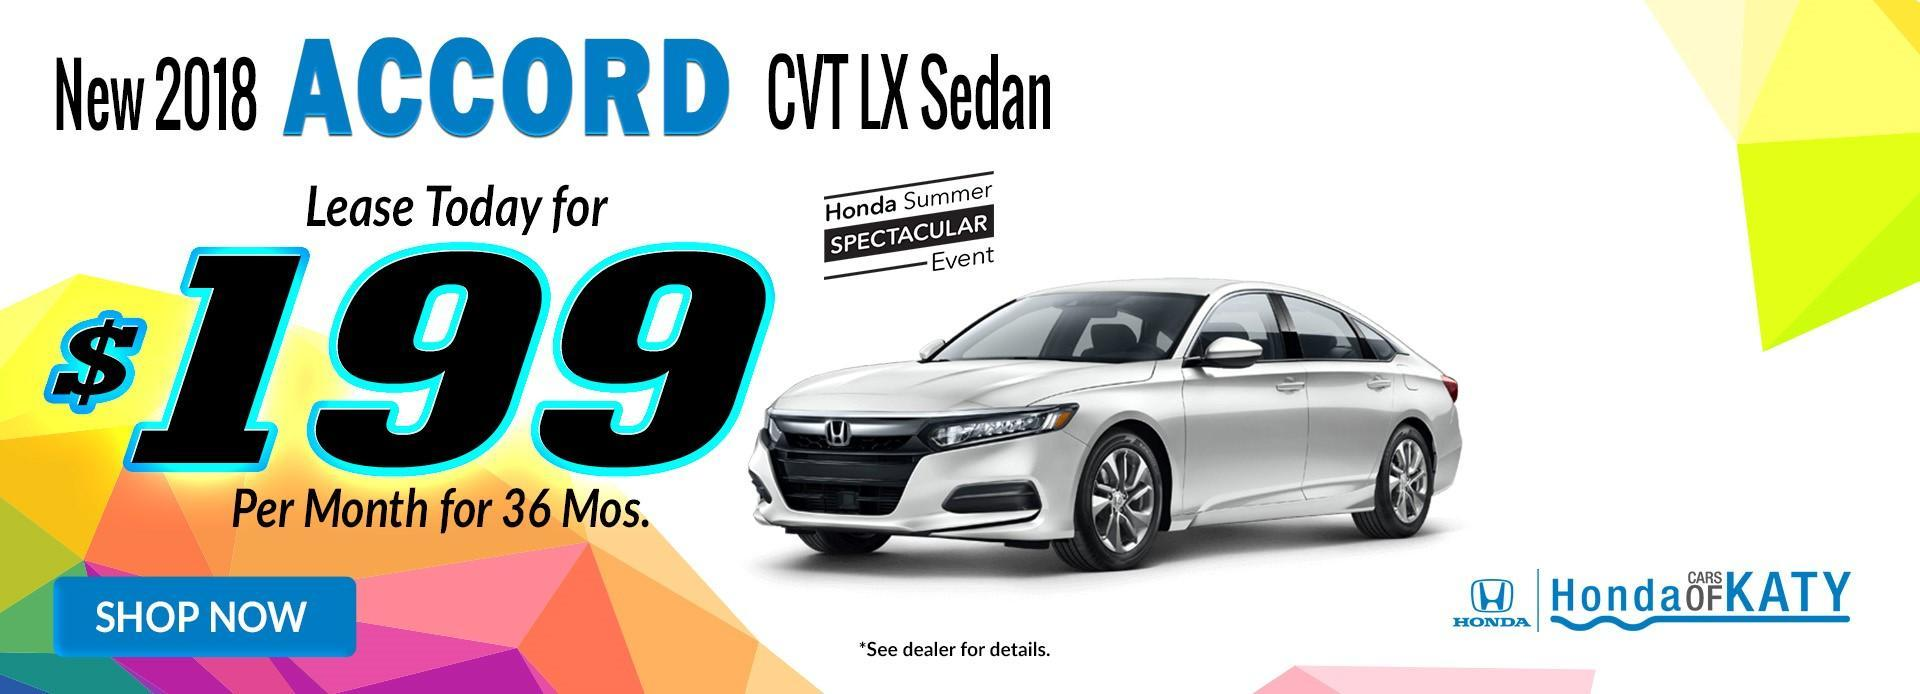 Accord Offer